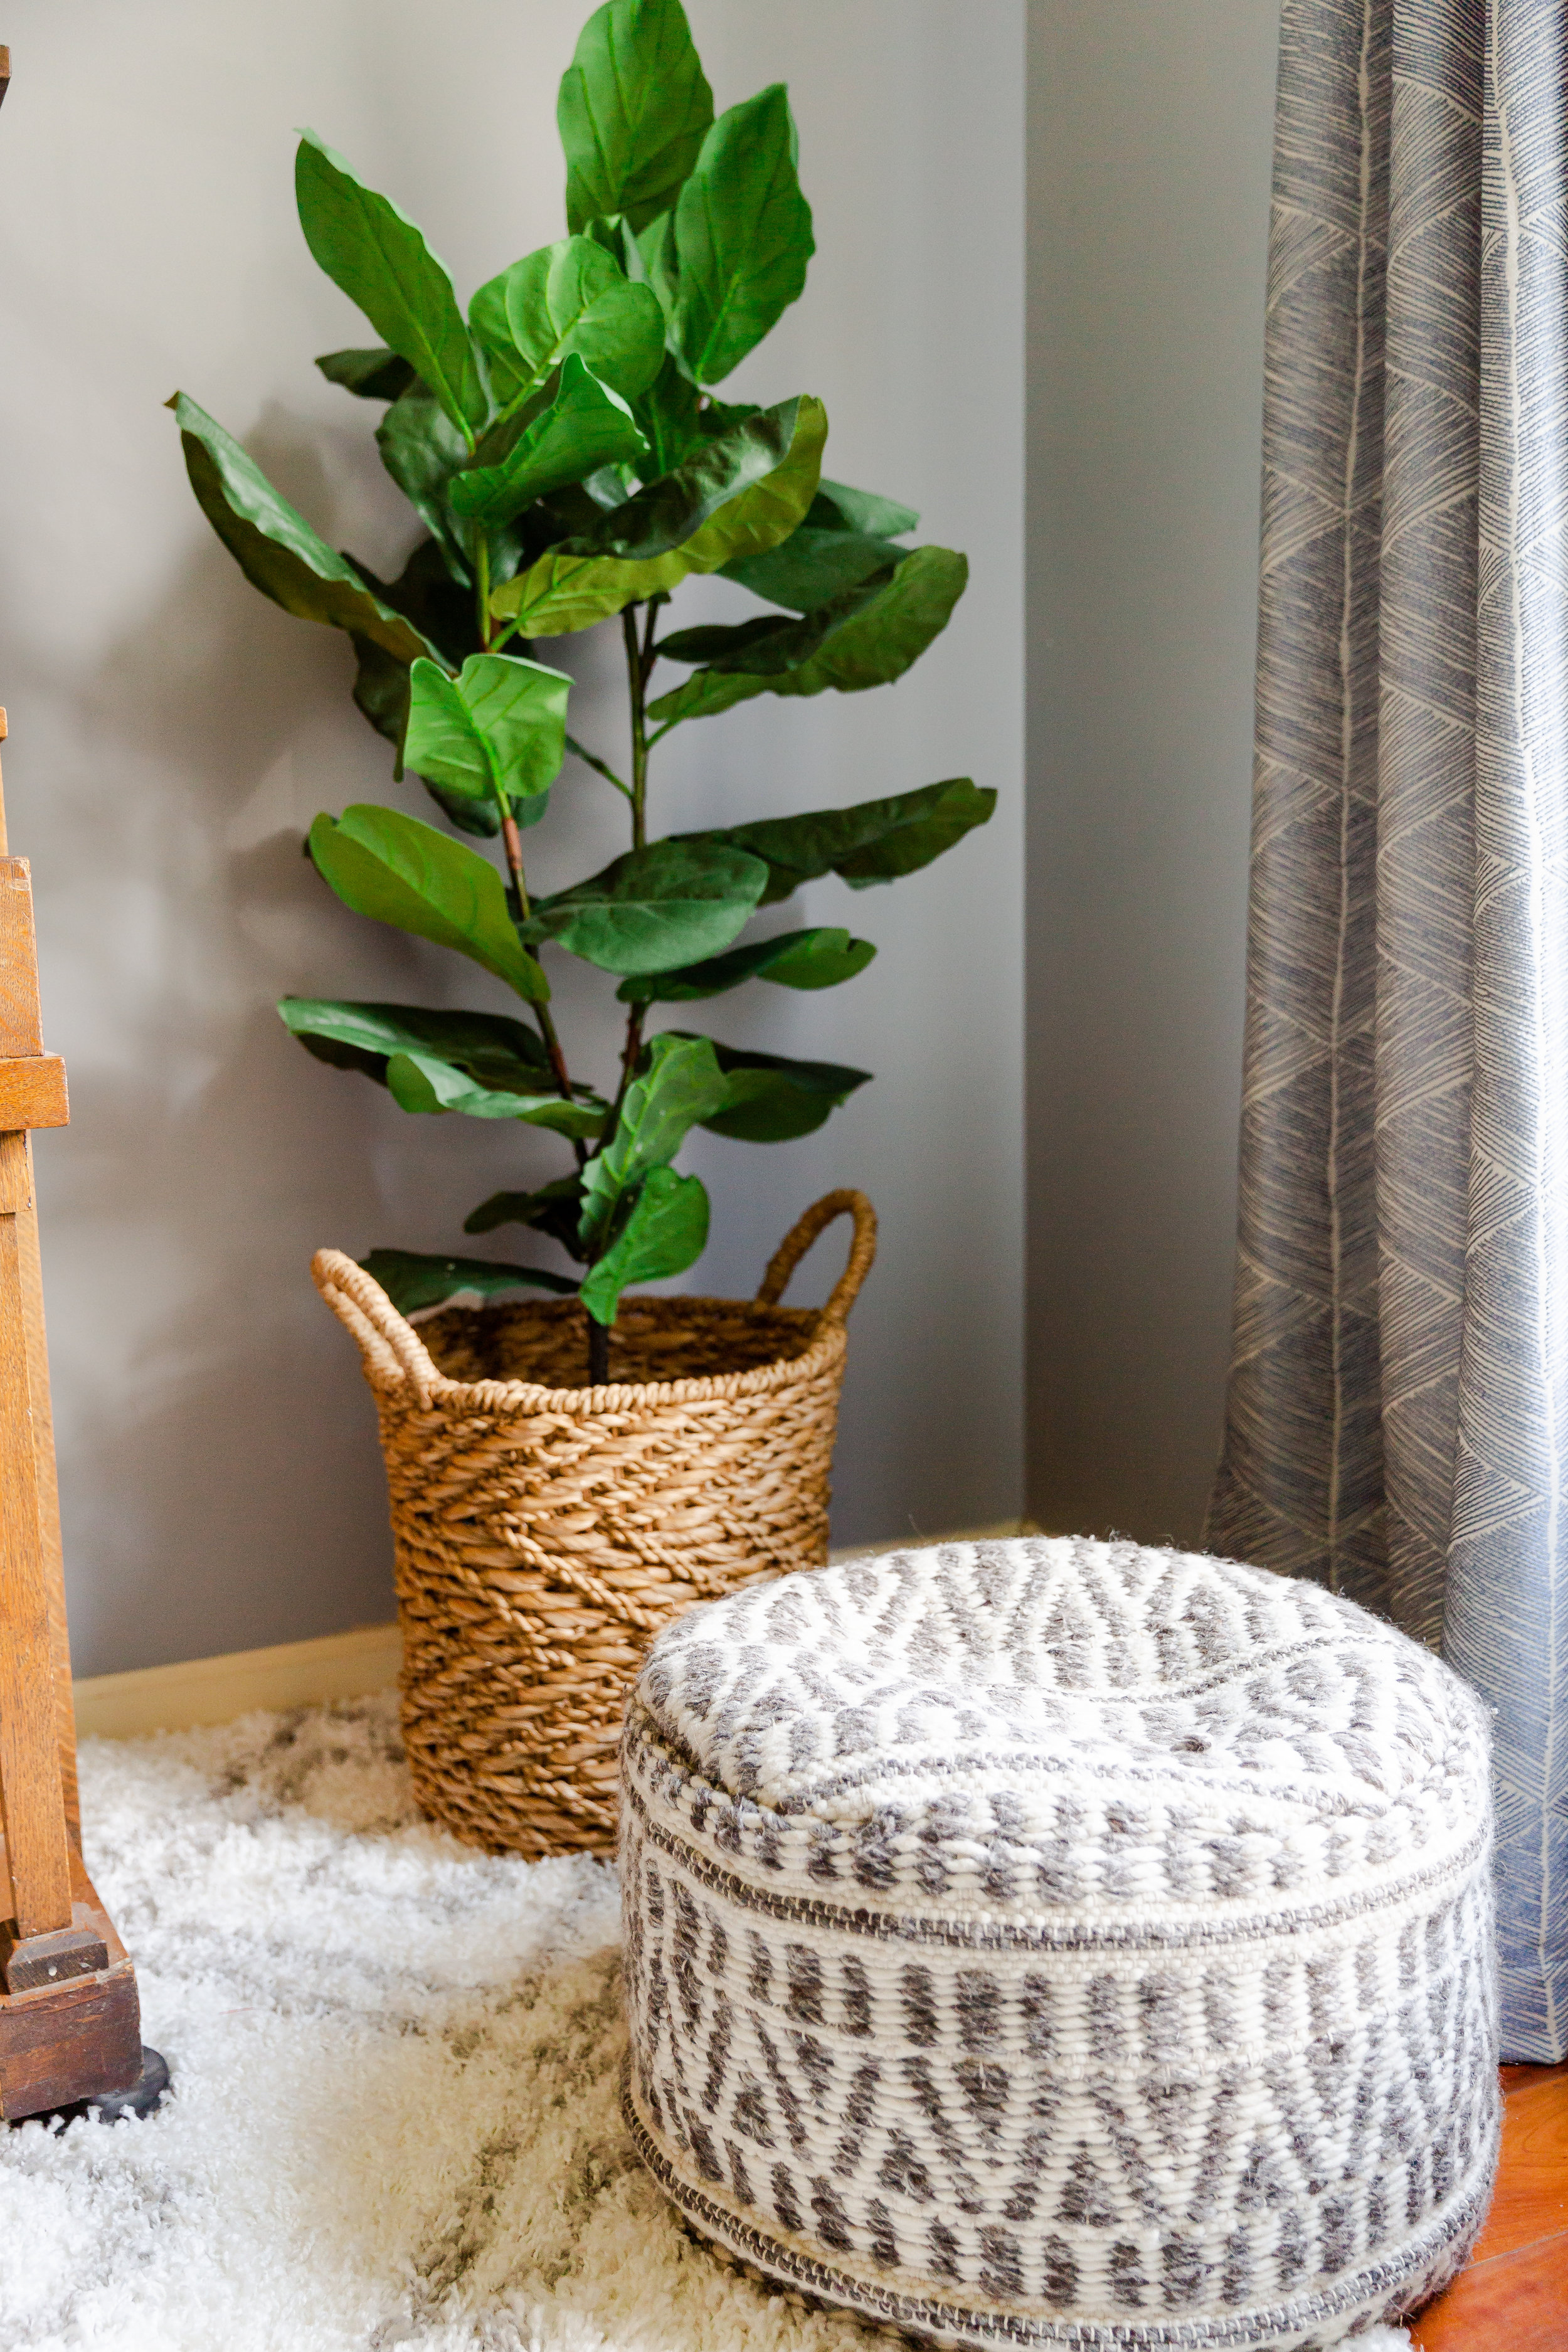 With all of the neutral tones going on in the living room, it was crucial that we added in pops of greenery!  This fiddle leaf fig tree certainly did the job.